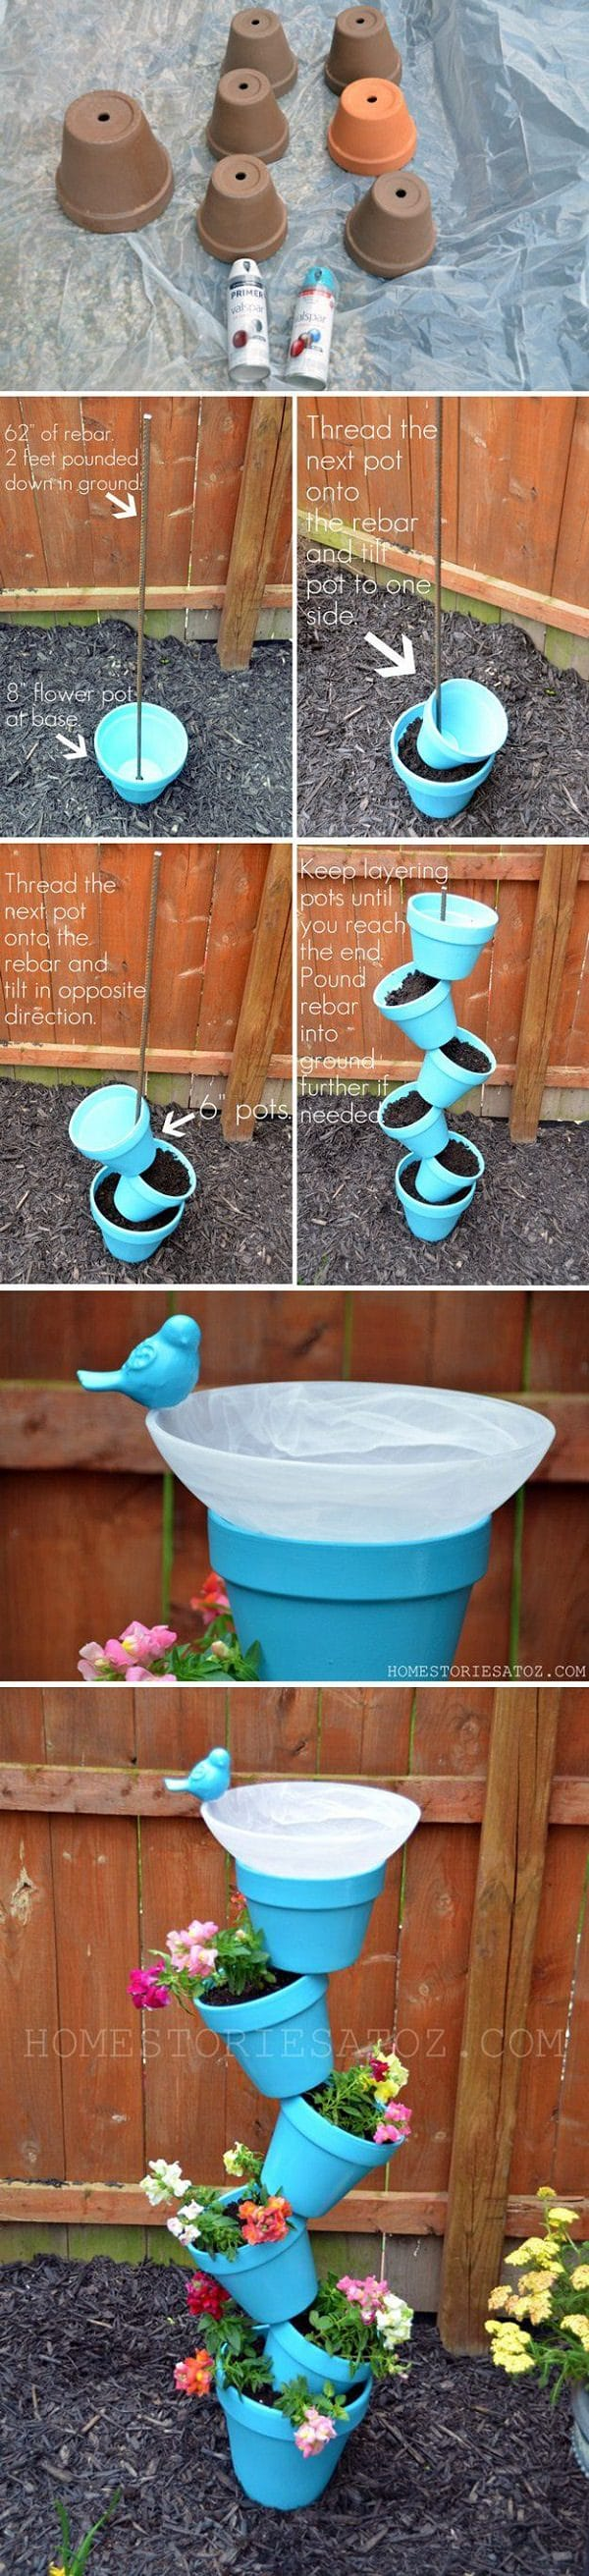 18 Cool DIY Ideas To Make Your Garden Look Great | Balcony ...